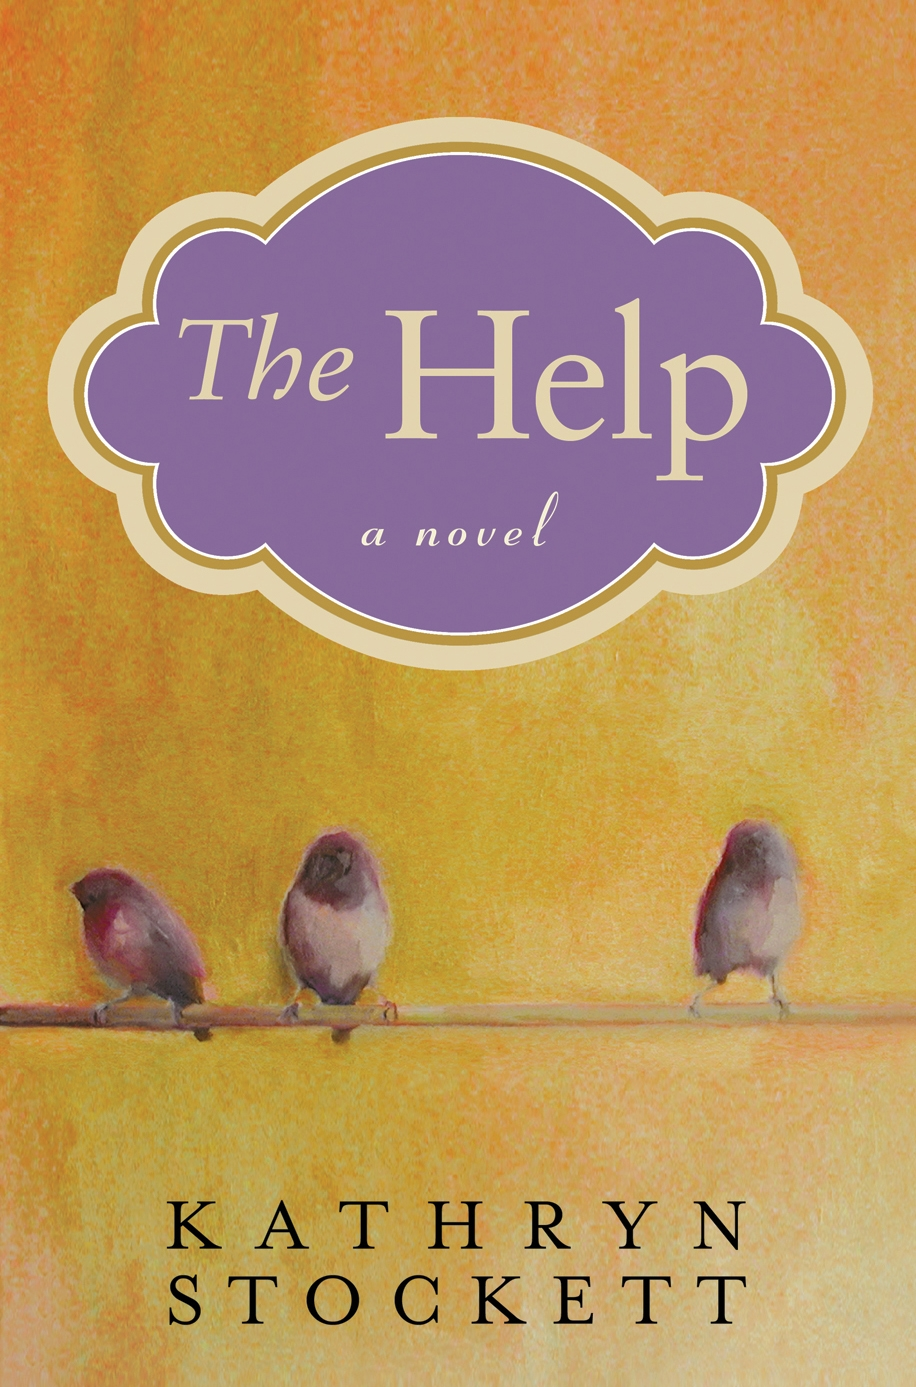 Read The Help online free